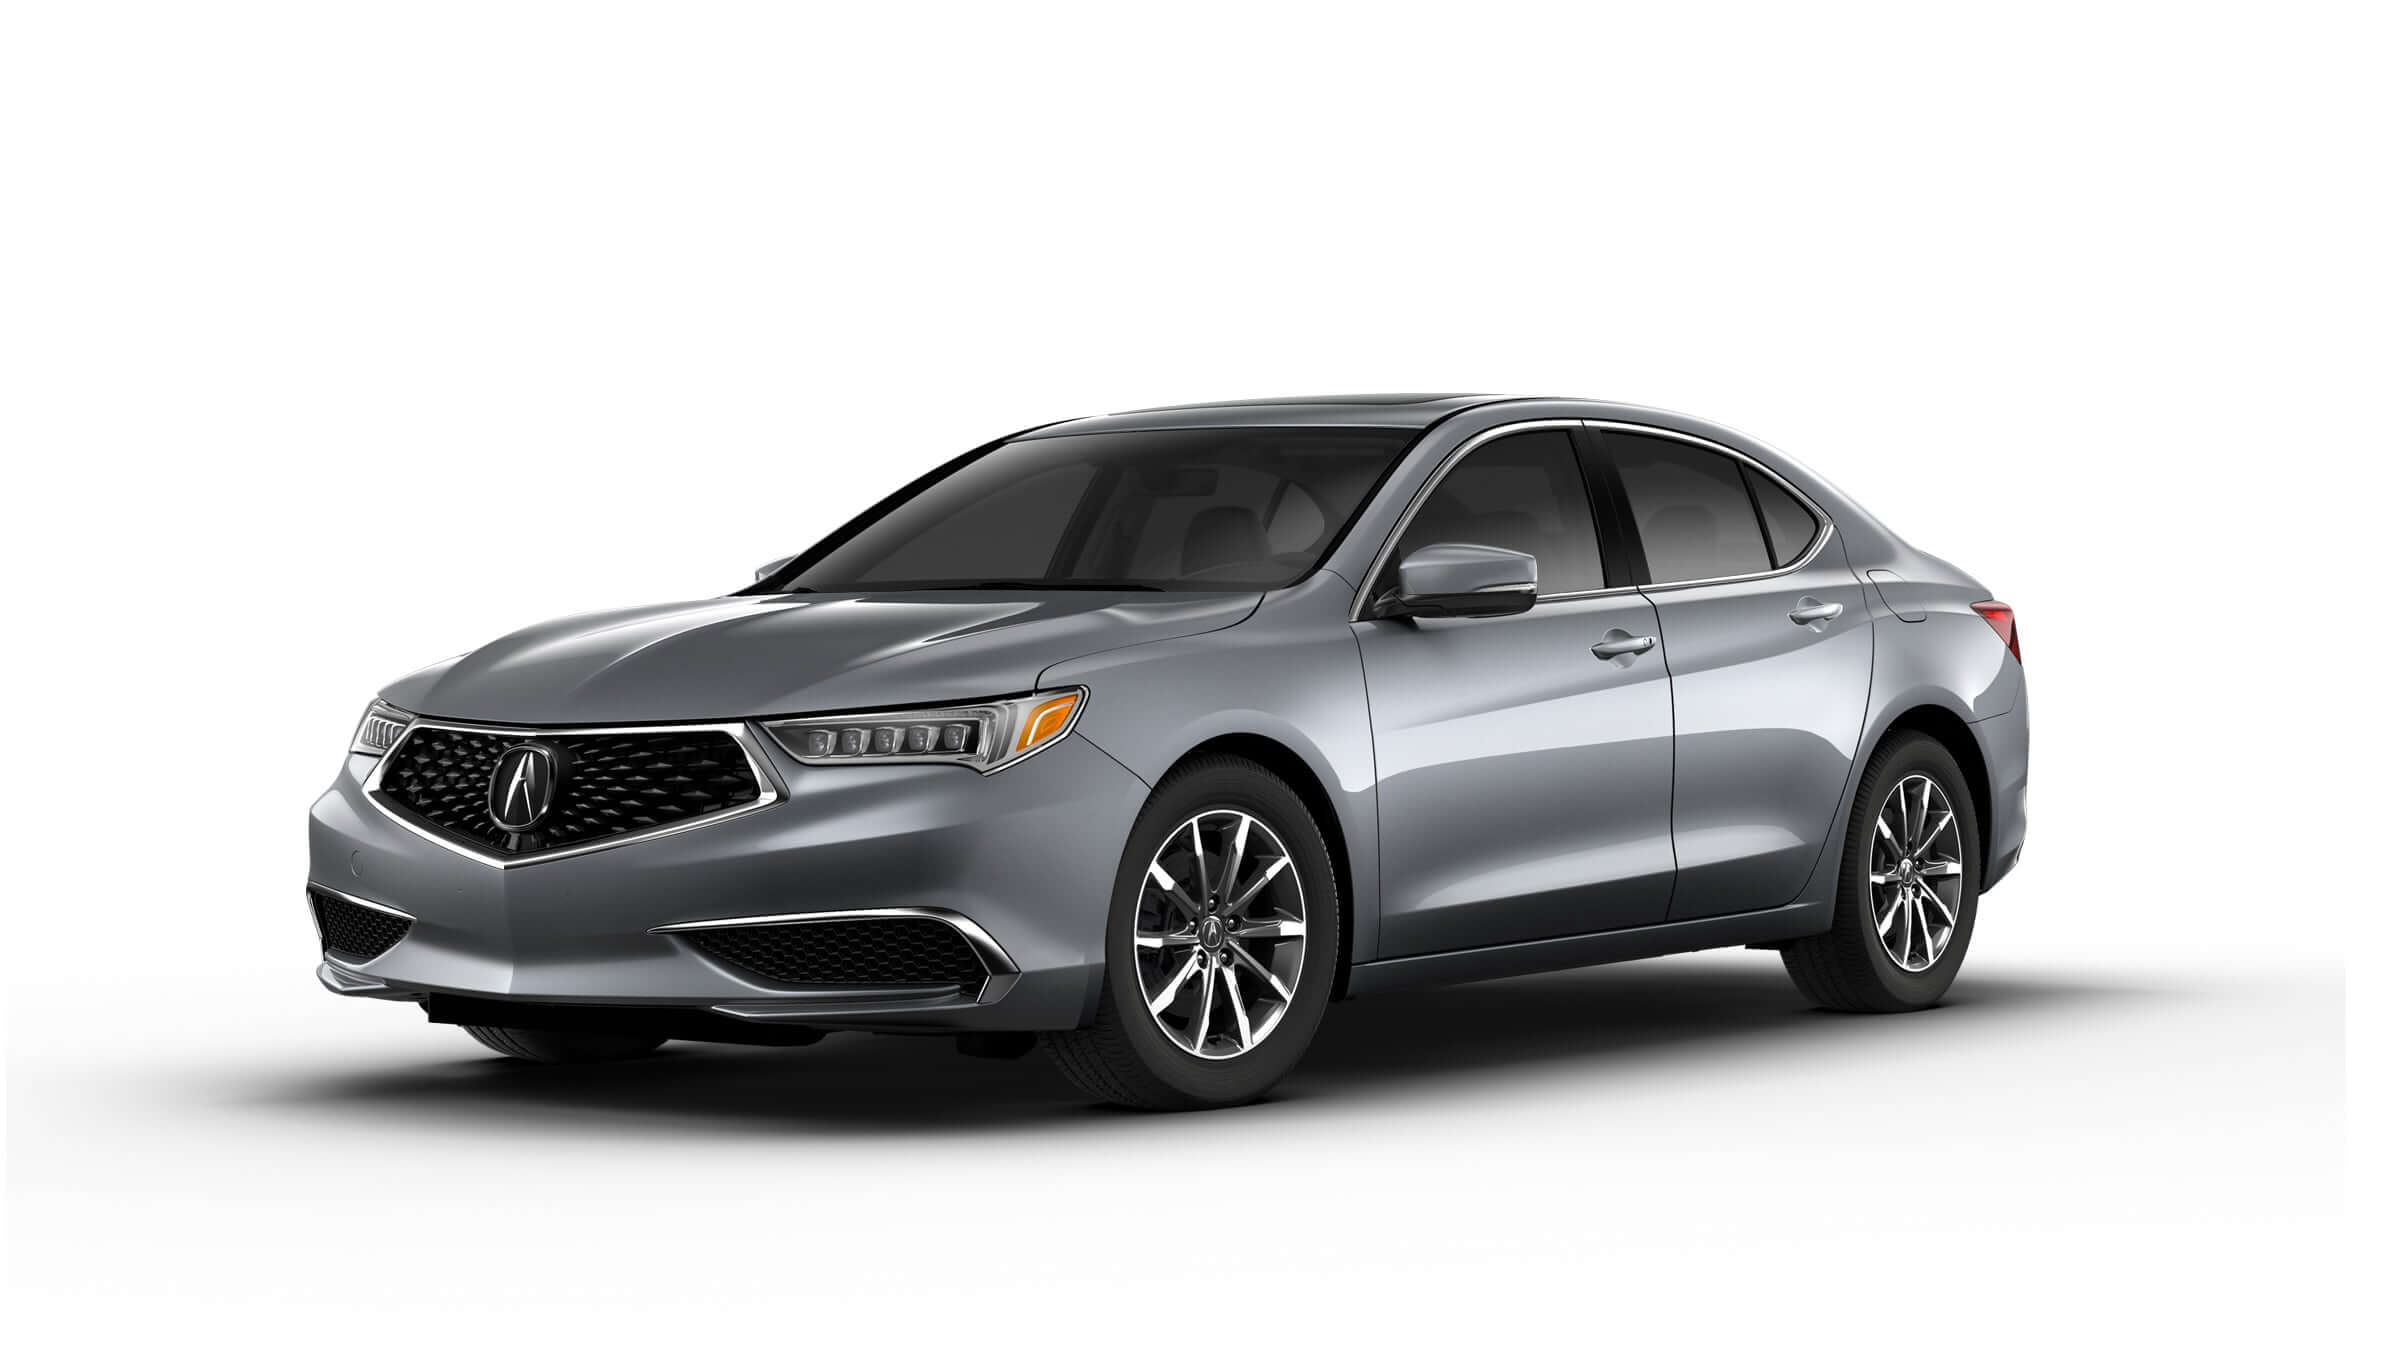 loan view for inn honda mdx or may car your lease current acura an used jorud codes deals new long princeton coupon and to the specials wildwood next near available find